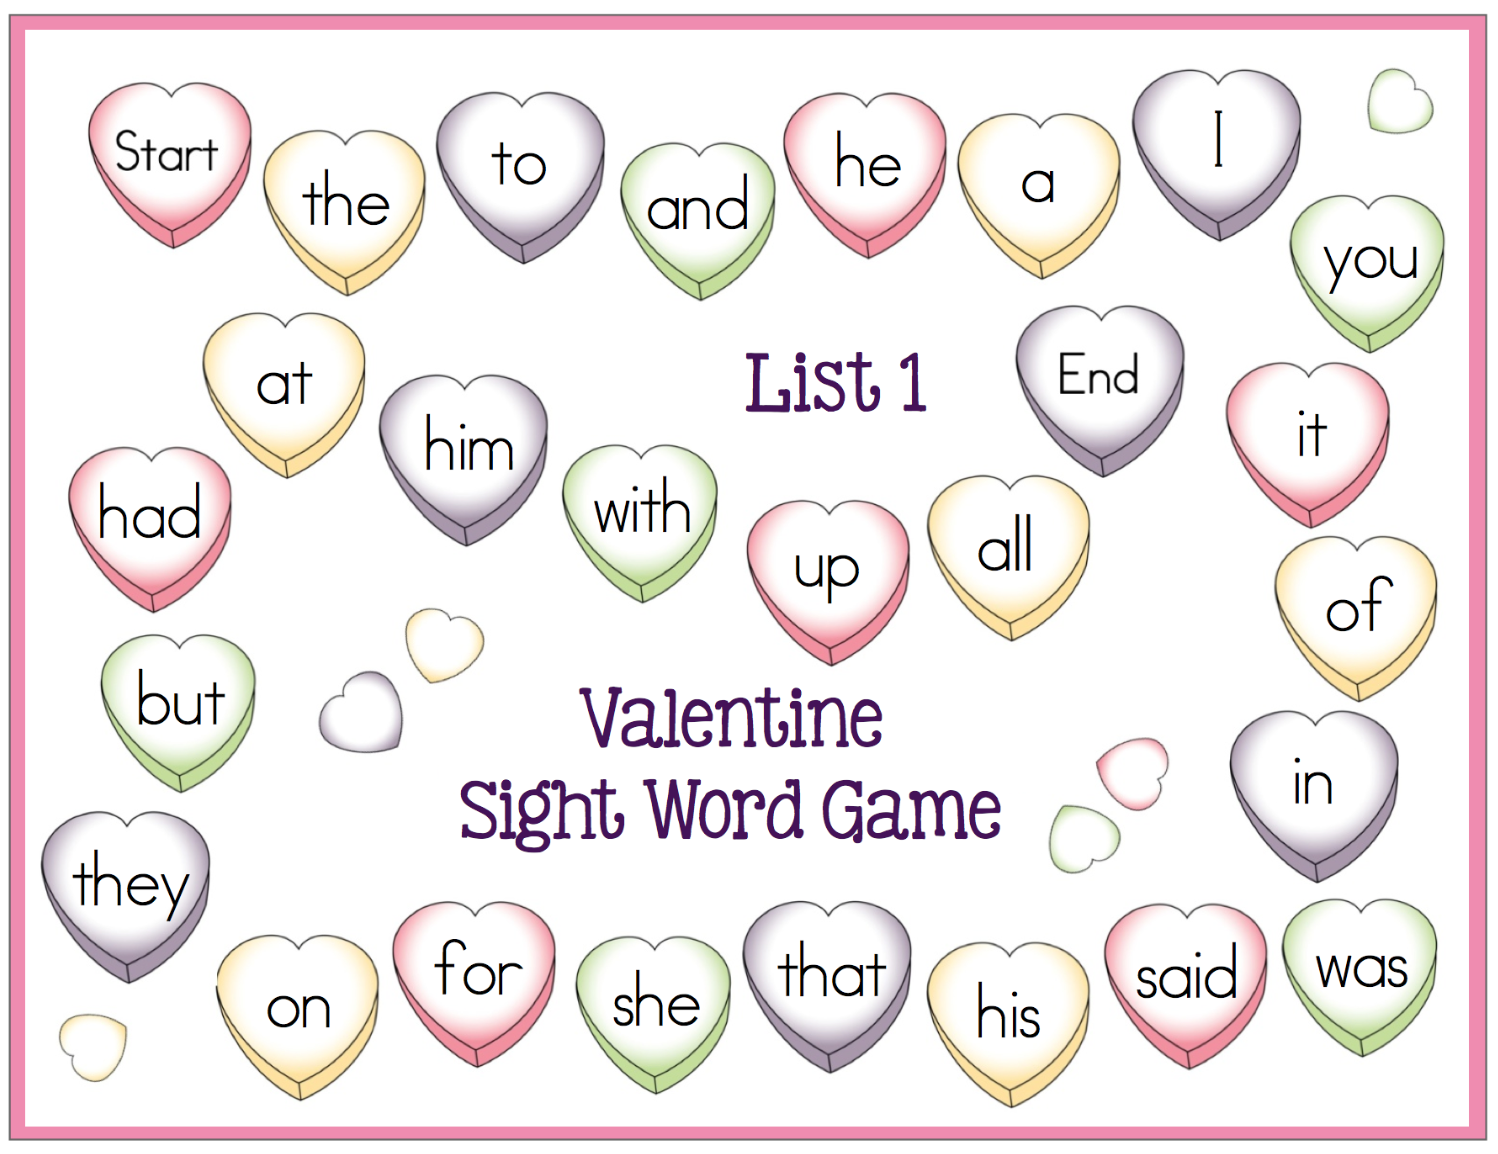 free valentine sight word game boards fun february center activity - Free Valentine Games